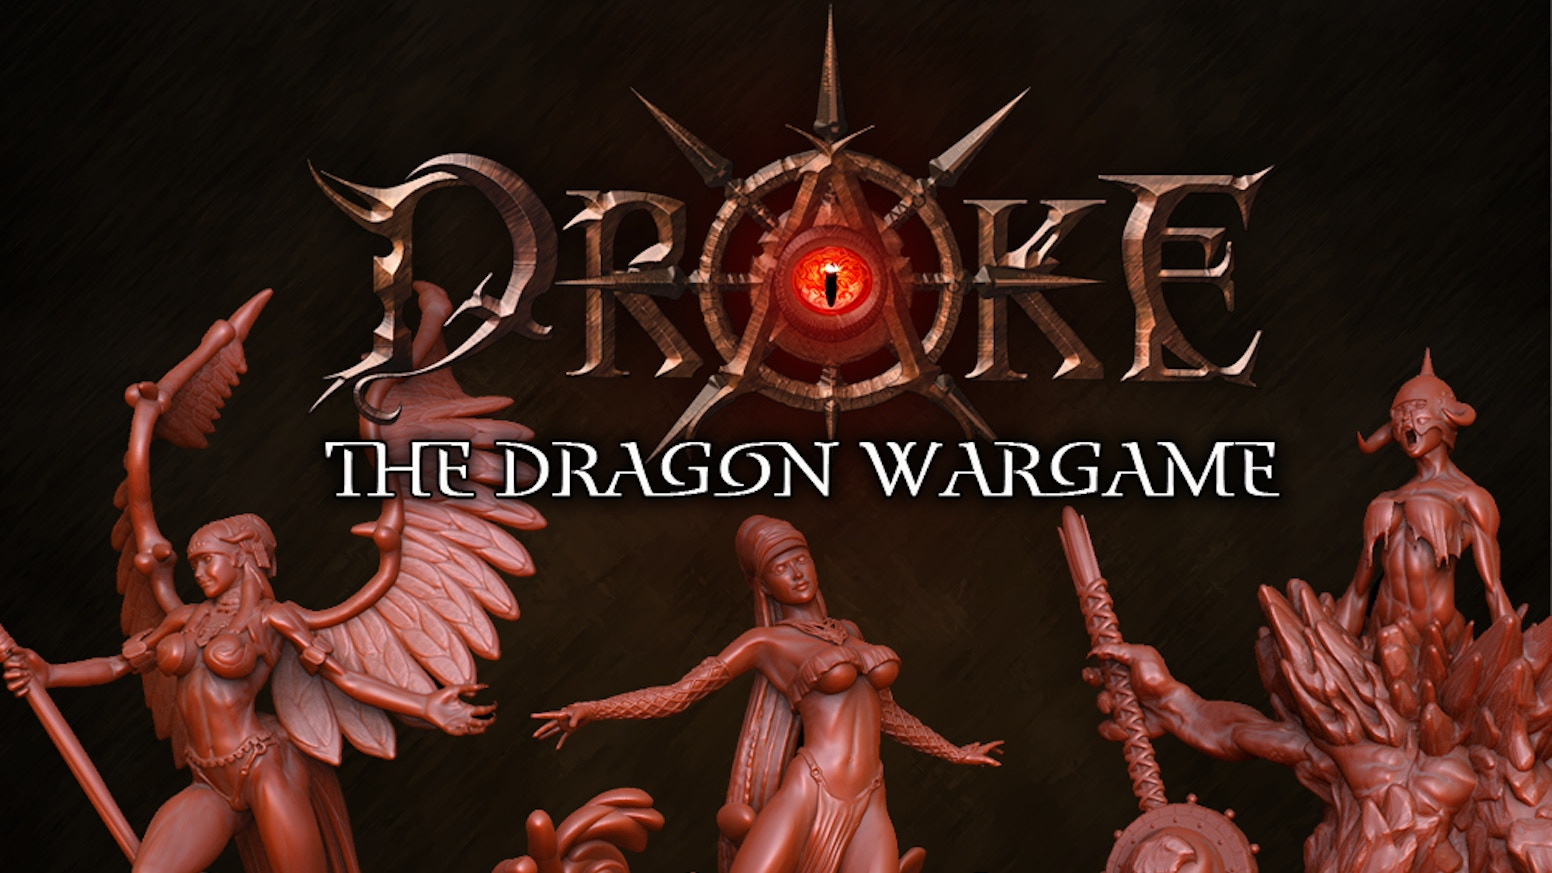 drake the dragon wargame by action games miniatures my favorite